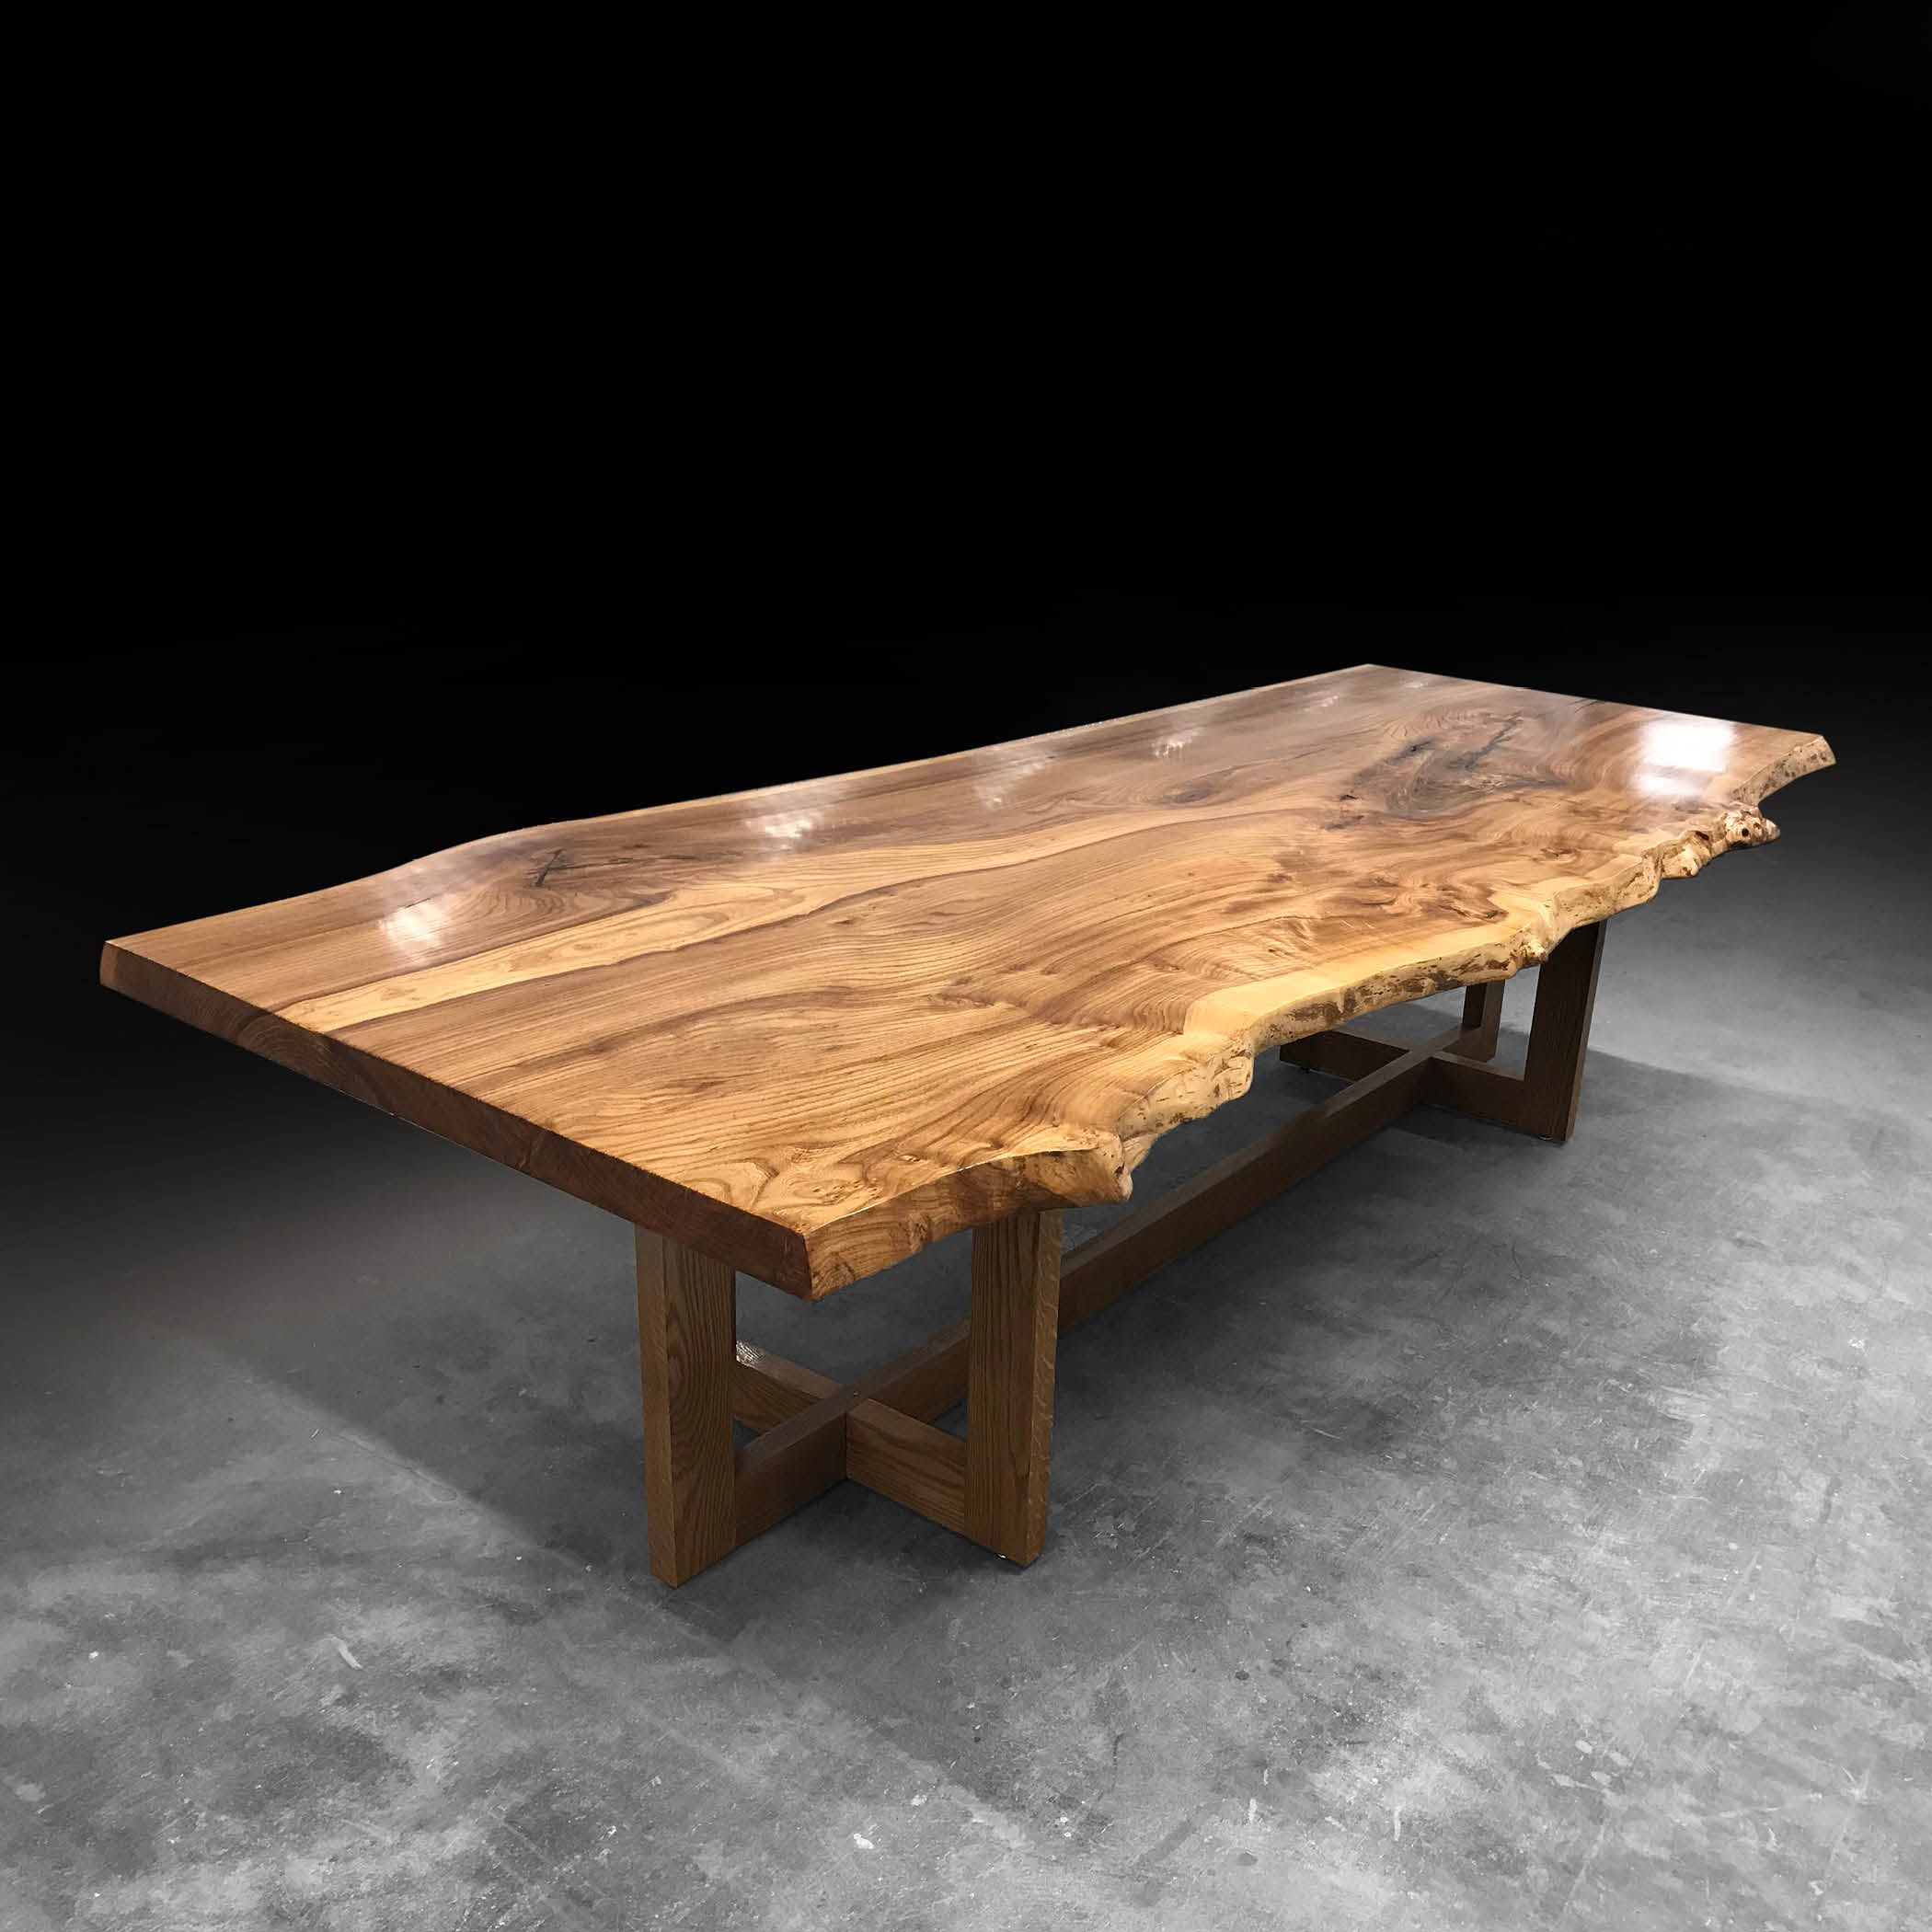 Shown With Elm Wood Slab Furniture Made From Fallen Trees And